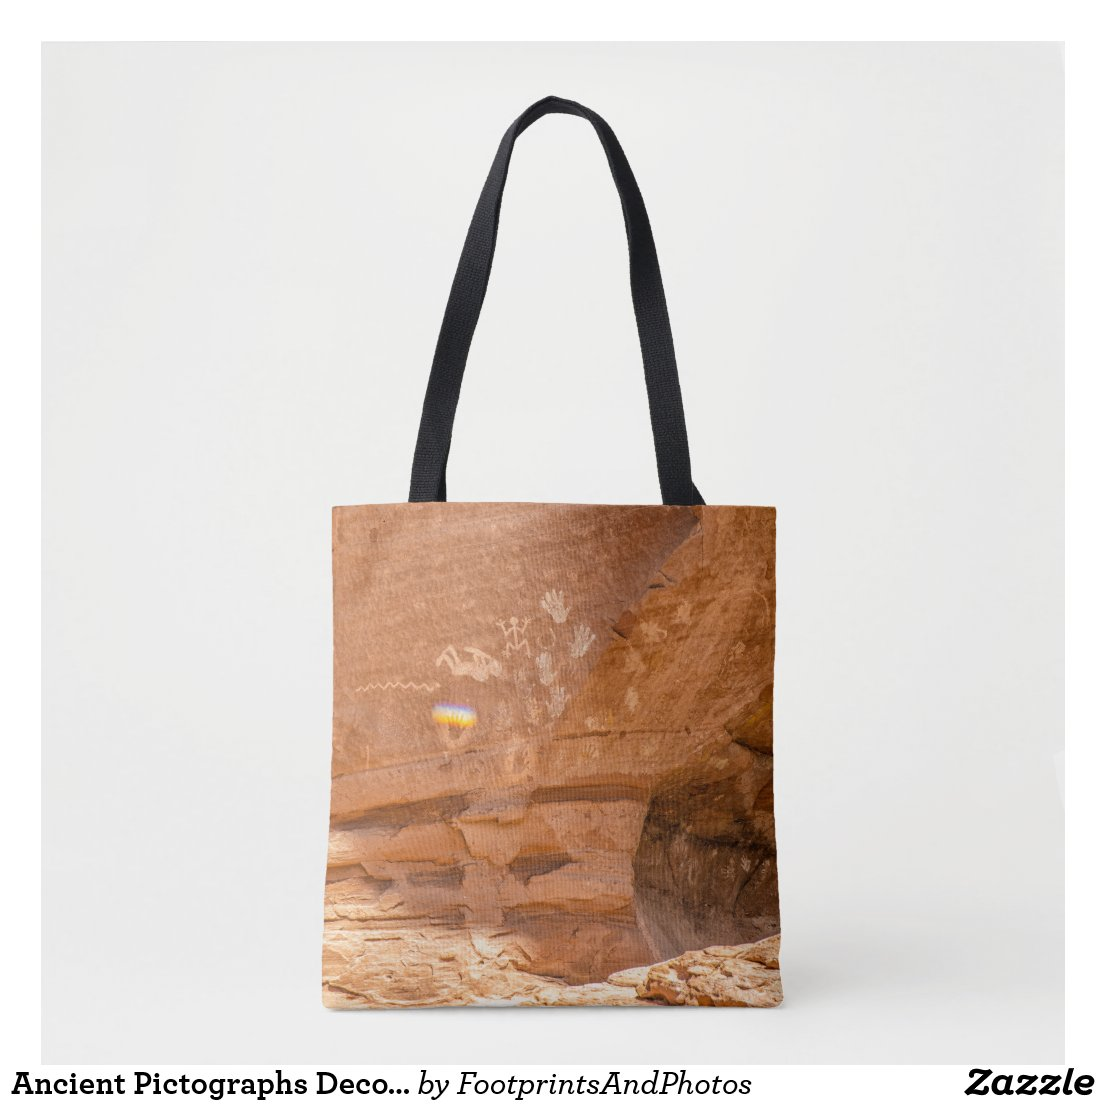 Ancient Pictographs Decorate Canyon de Chelly Tote